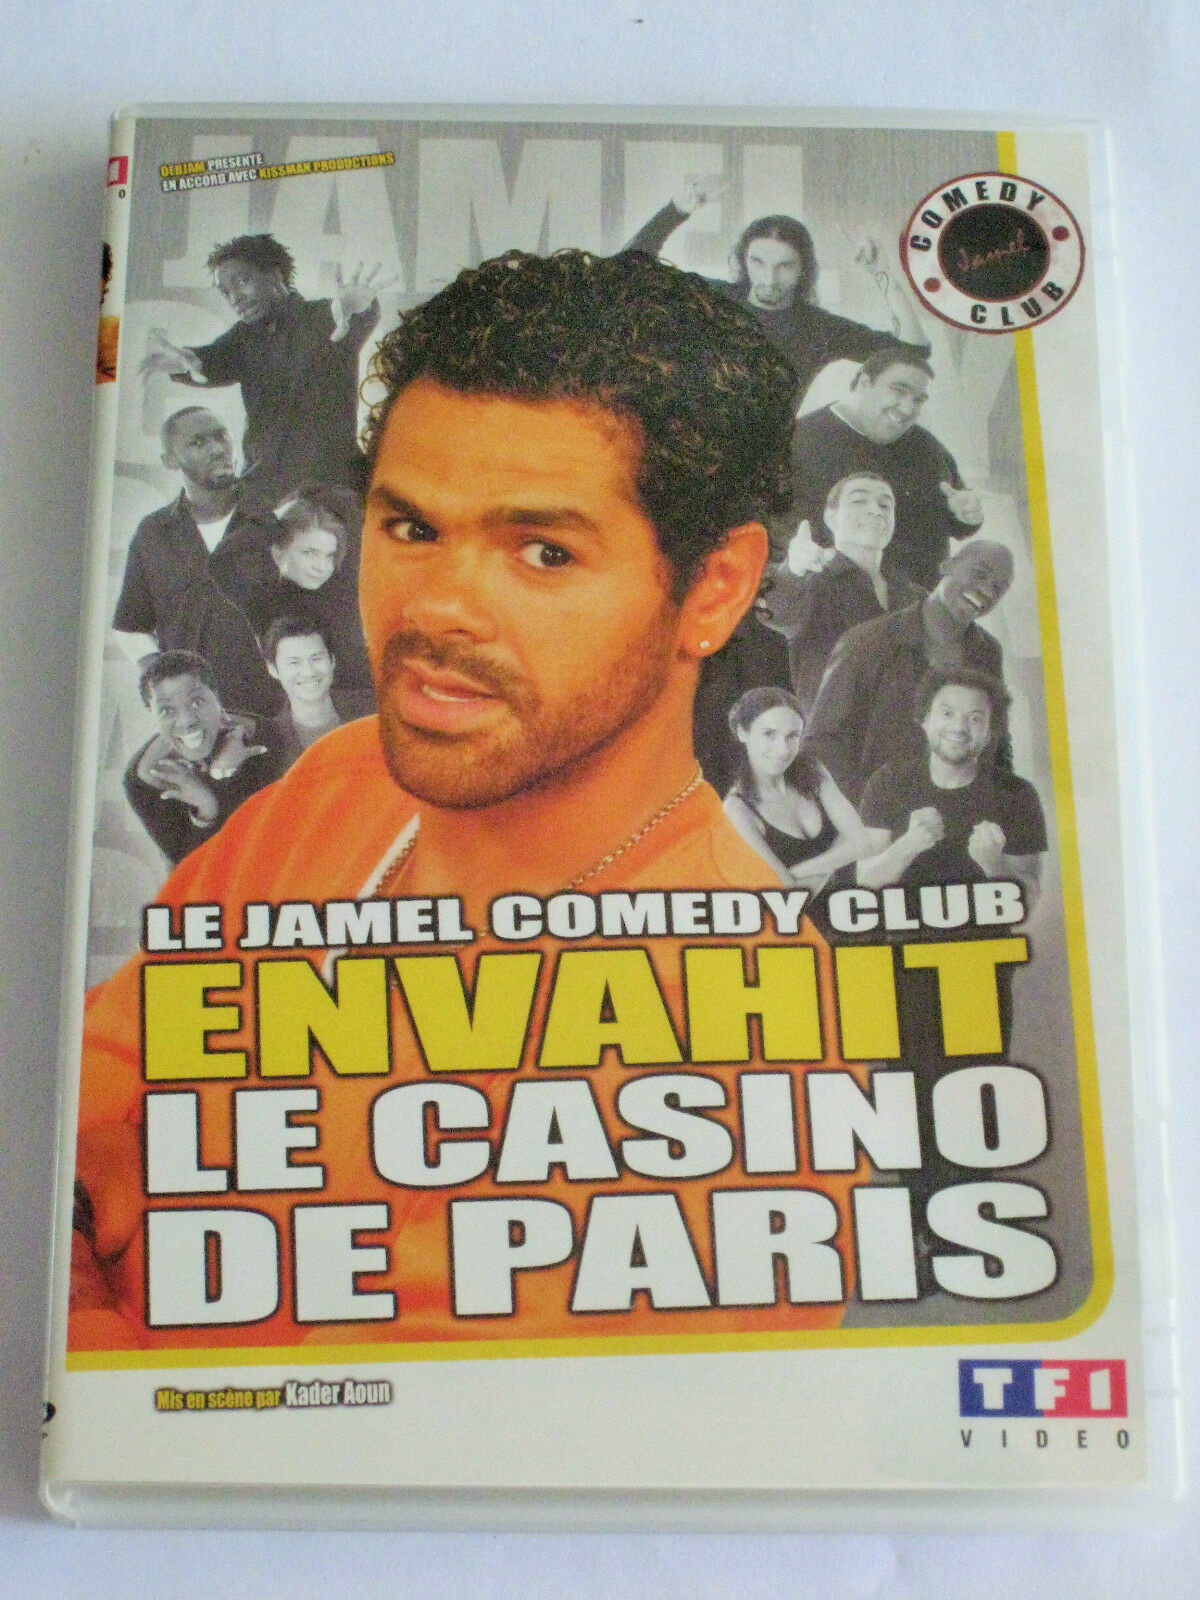 LE TÉLÉCHARGER COMEDY PARIS JAMEL GRATUITEMENT CASINO GRATUITEMENT LE ENVAHIT CLUB DE